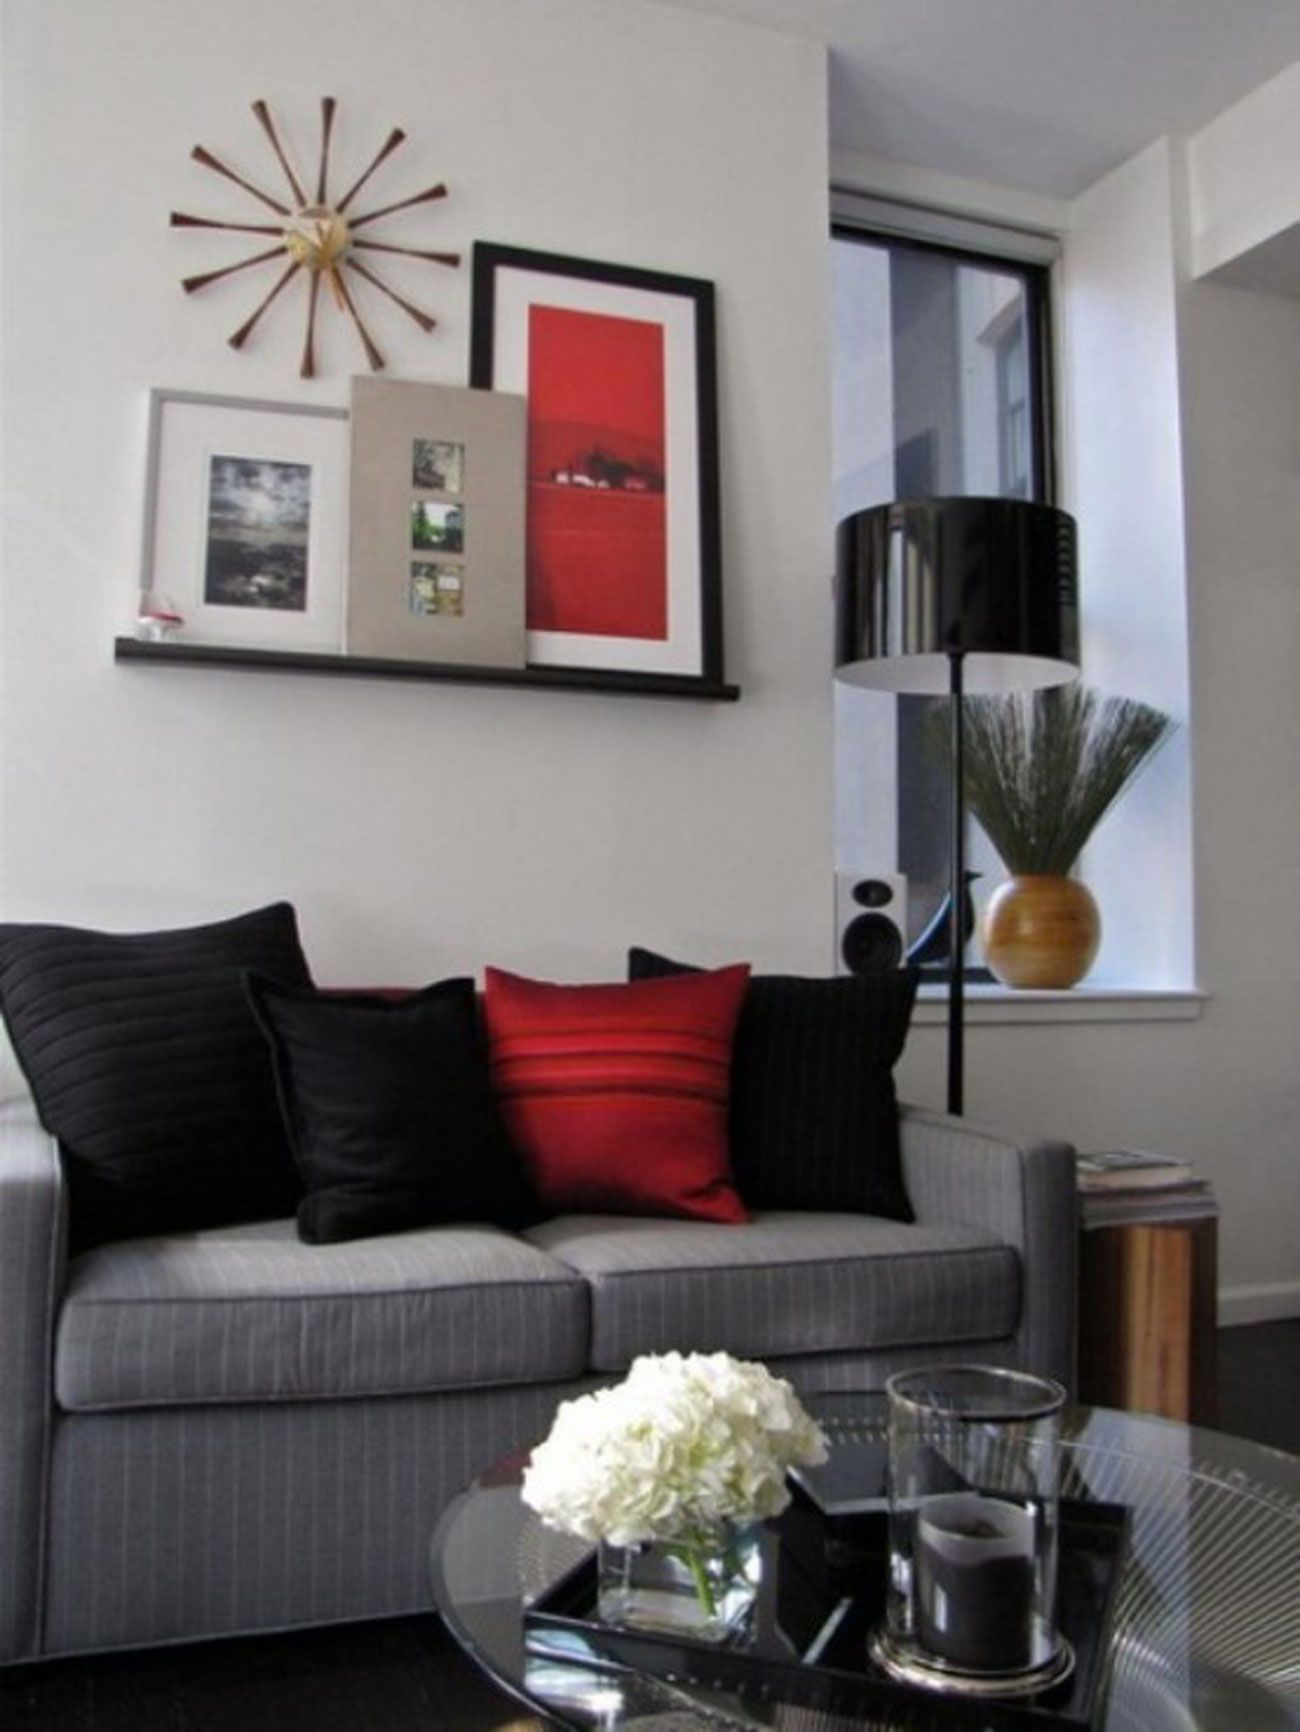 Living Room Design With Pigeon Gray Walls Paint Color Light Gray Painted Ceiling Charc Red Living Room Decor Grey And Red Living Room Black Living Room Decor